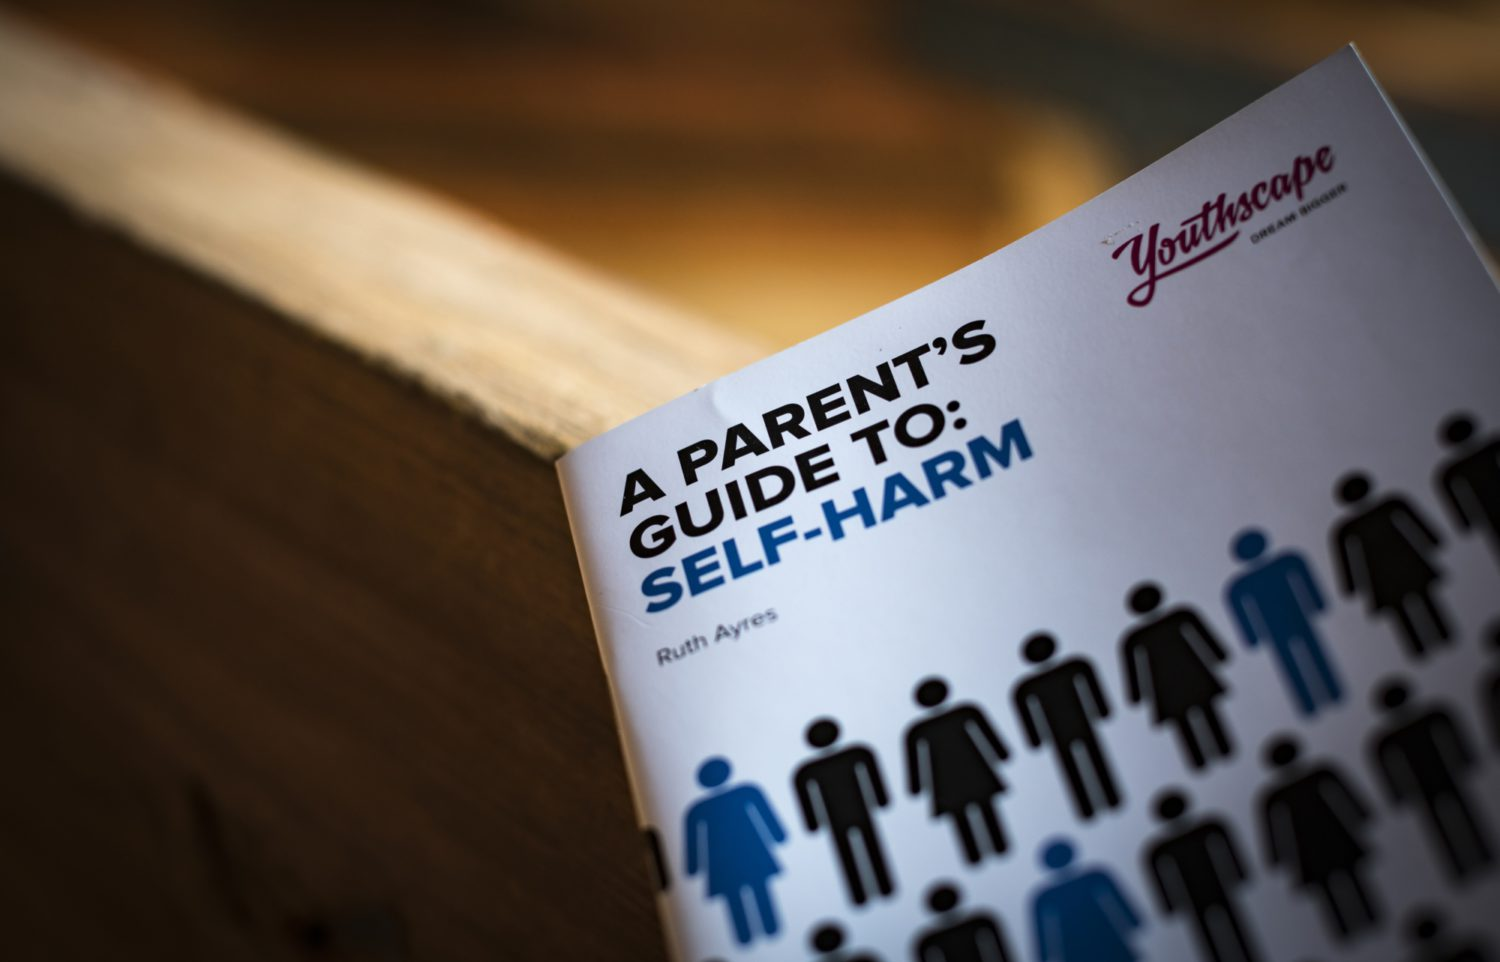 A Parent's Guide to Self-harm